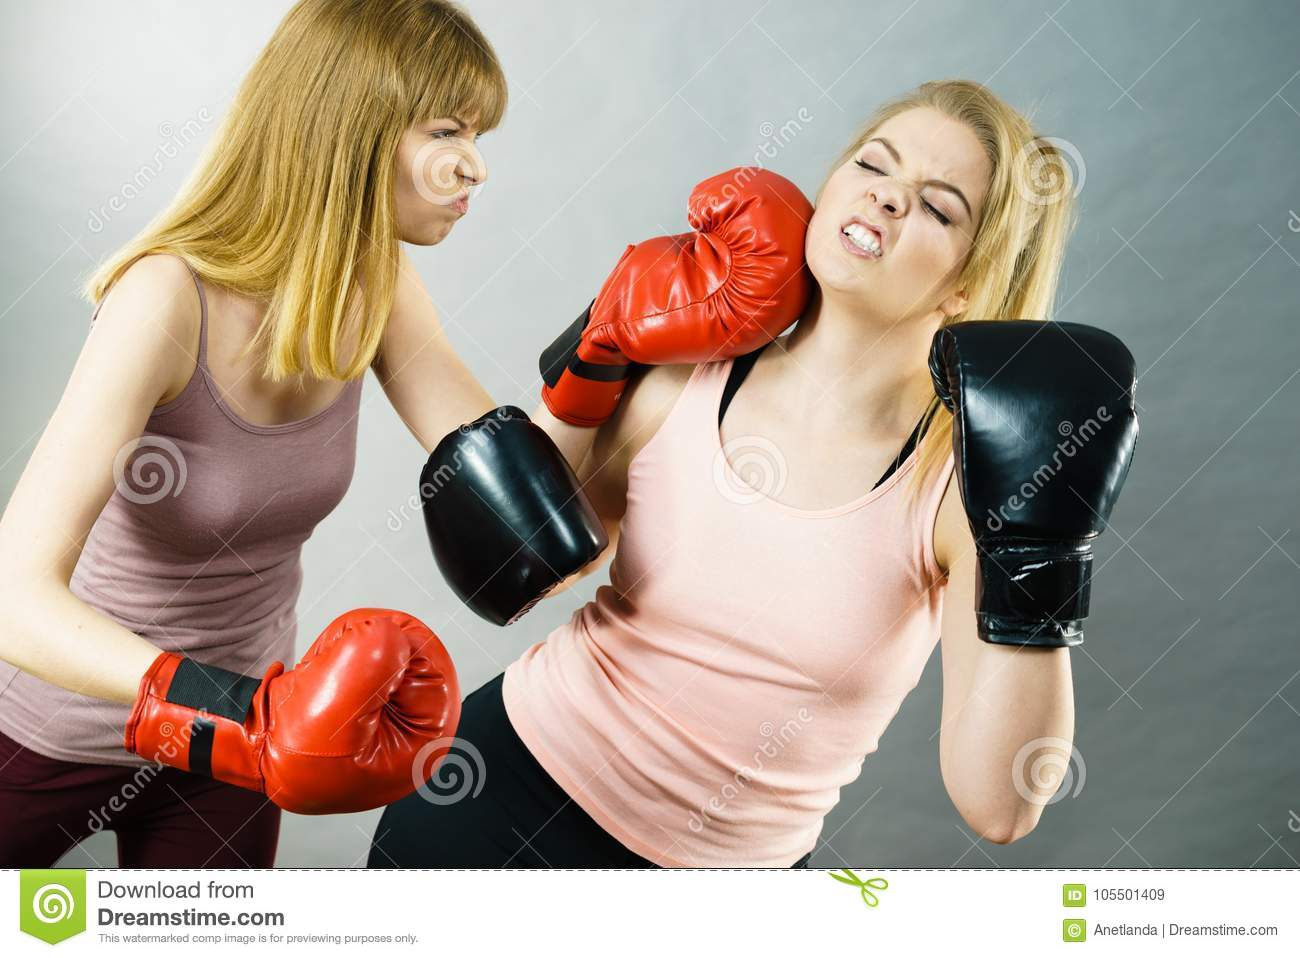 fbd9eafe4 Two agressive women wearing boxing gloves having argue fight being mad at each  other. Female violance concept.